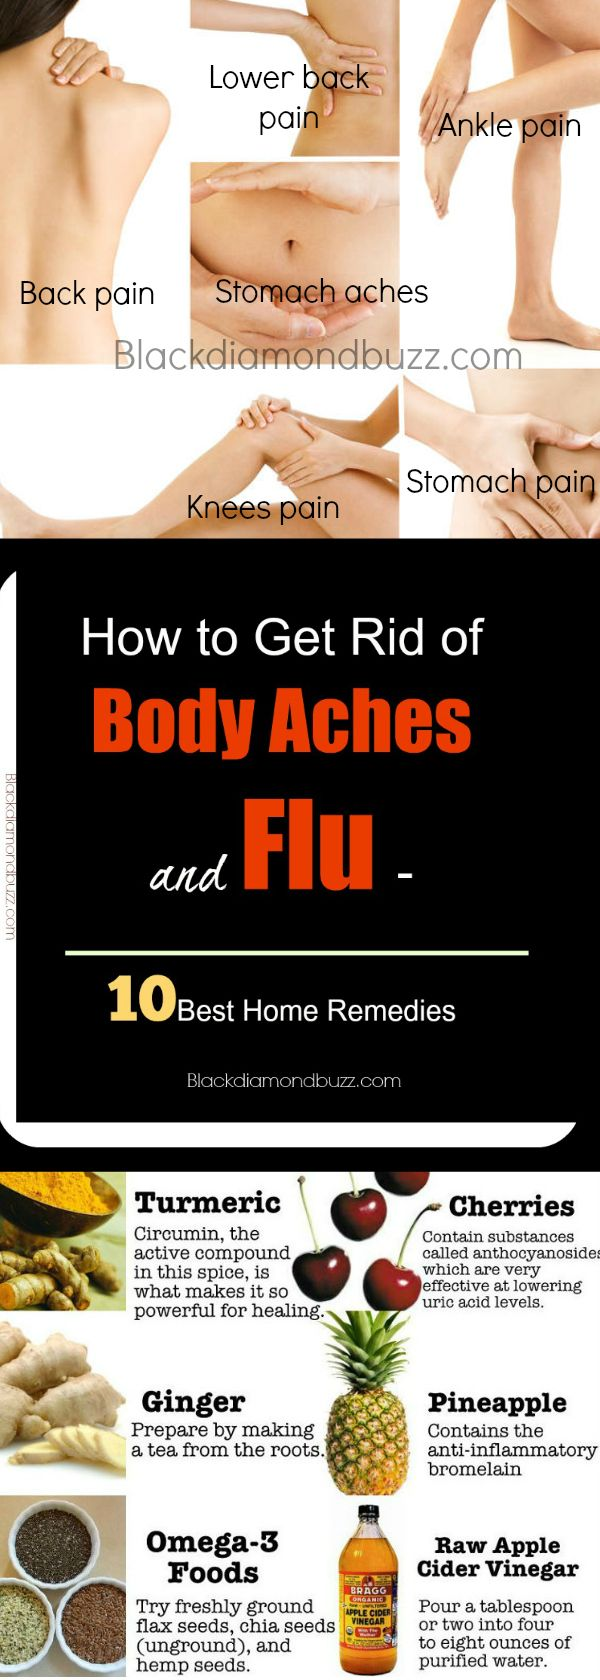 what is good for body aches